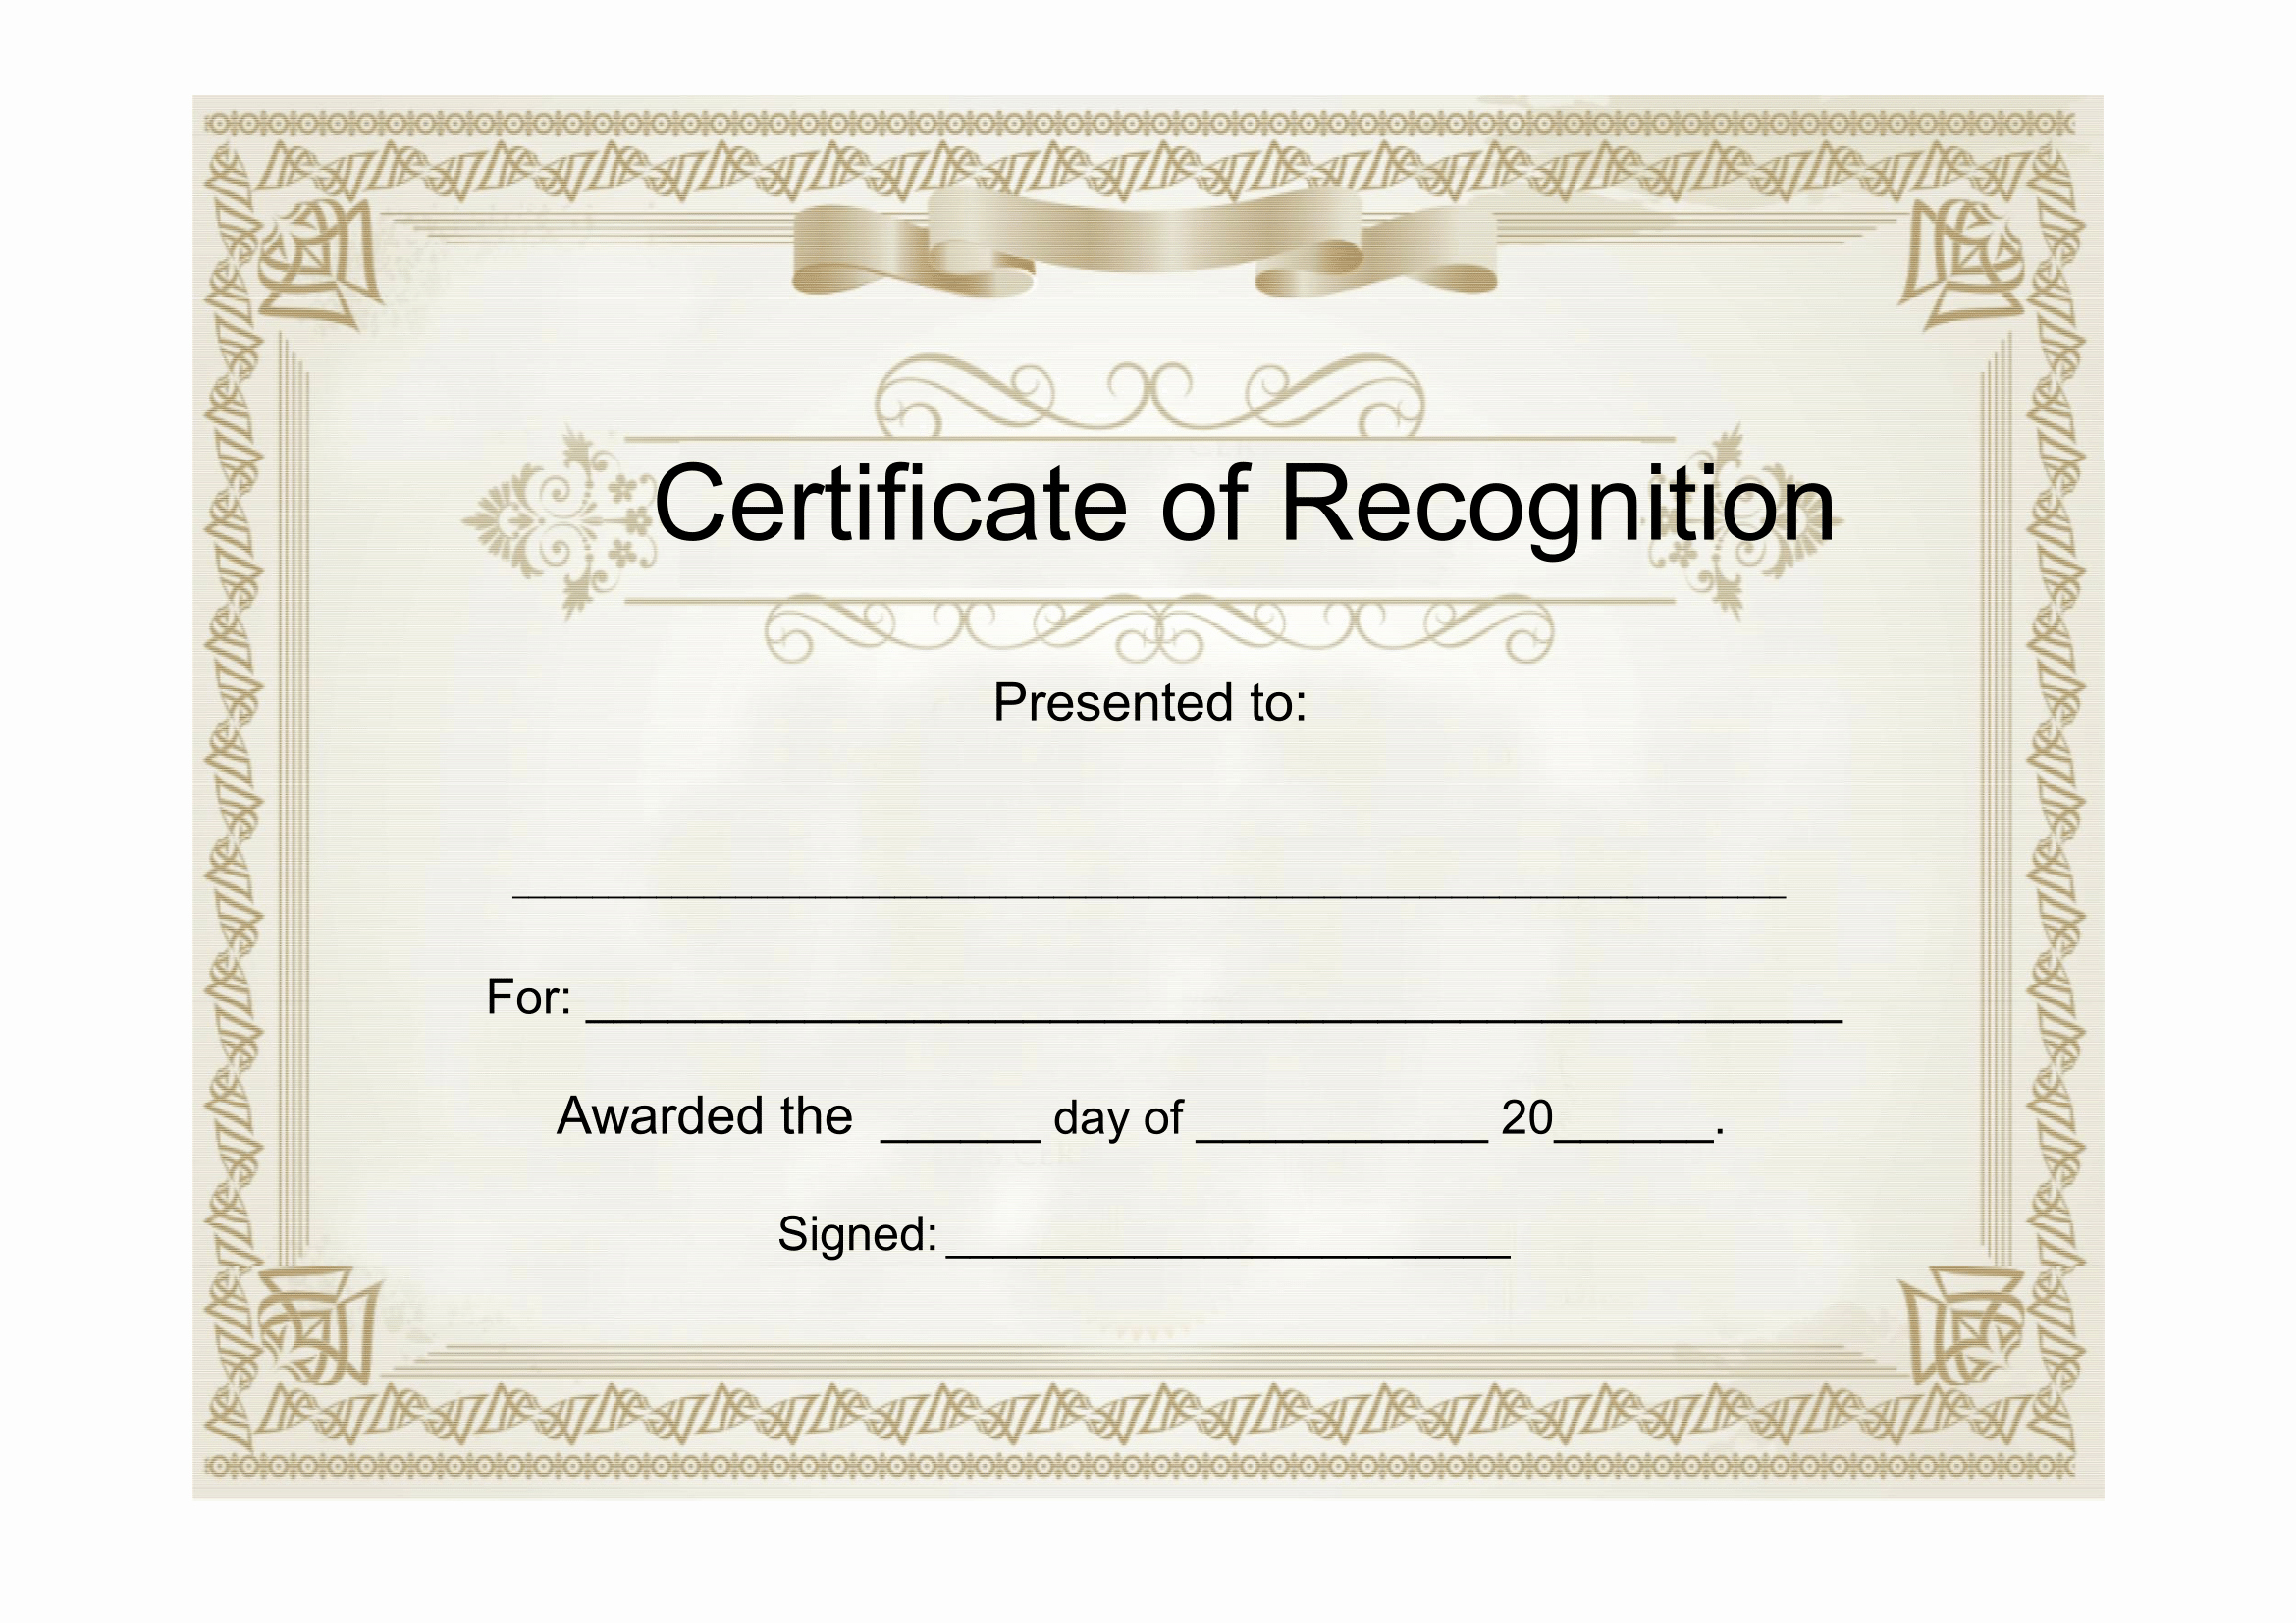 Certificate Of Recognition Template Inspirational Sample Certificate Of Recognition Free Download Template